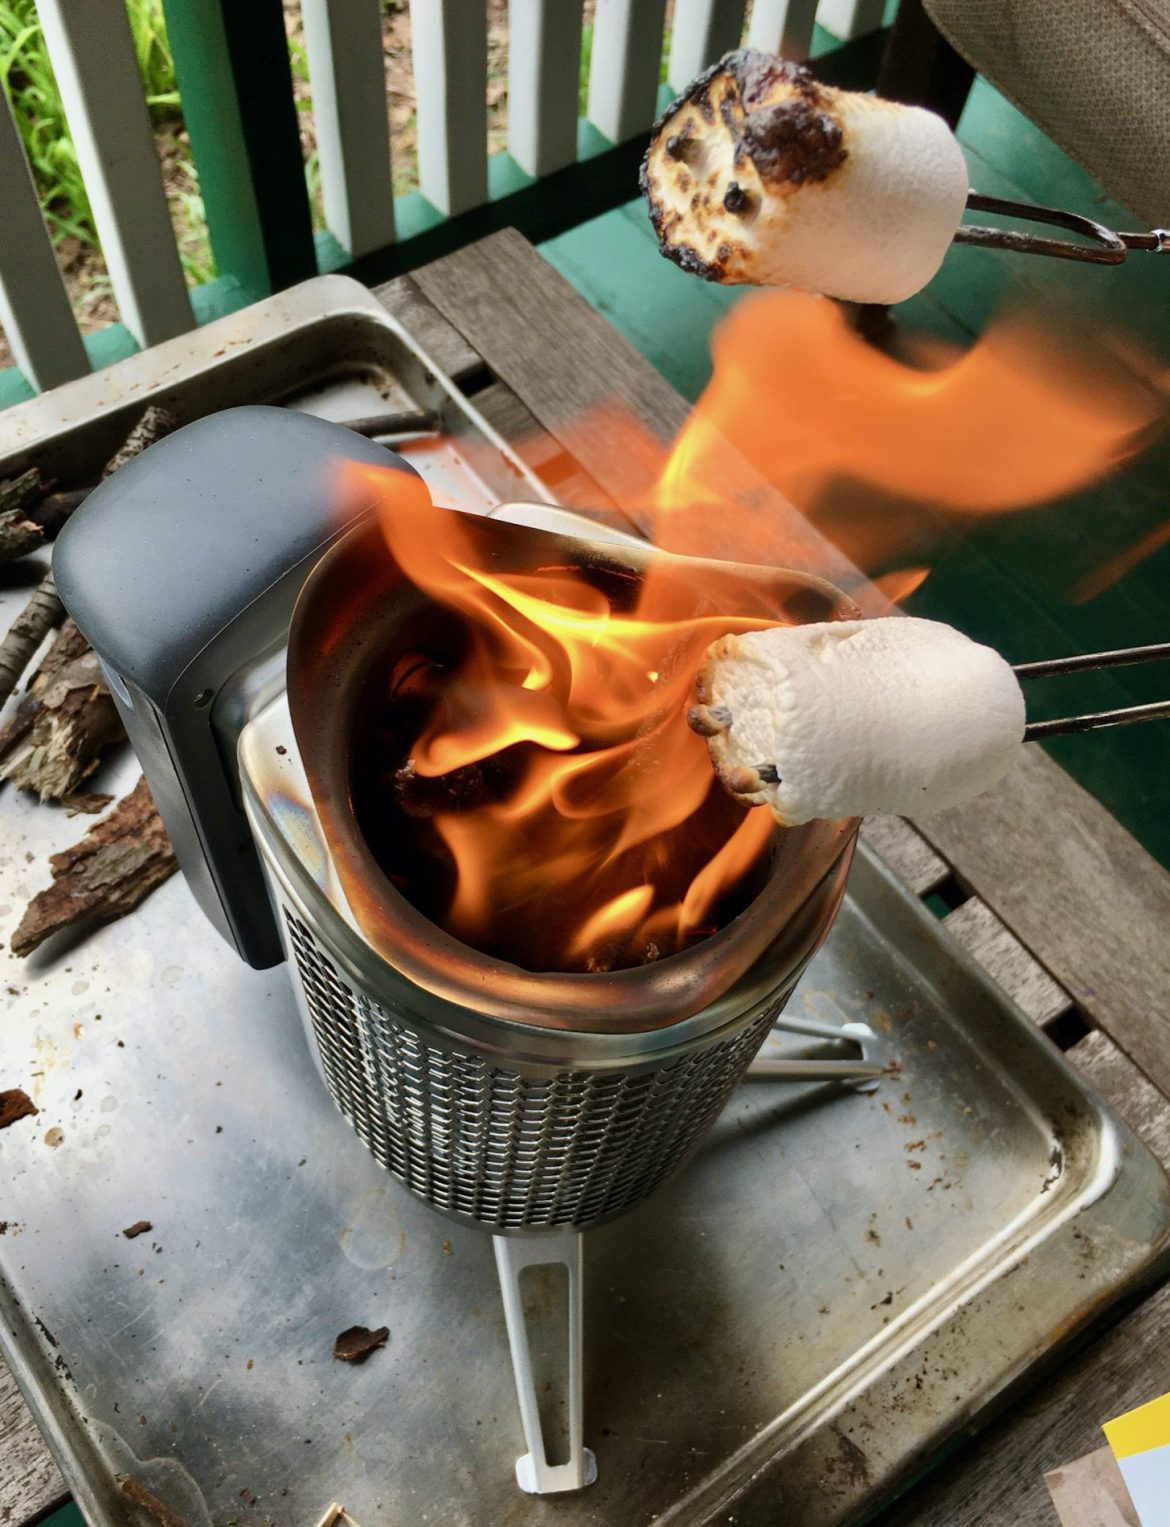 Doing some backyard cooking with the BioLite CampStove 2